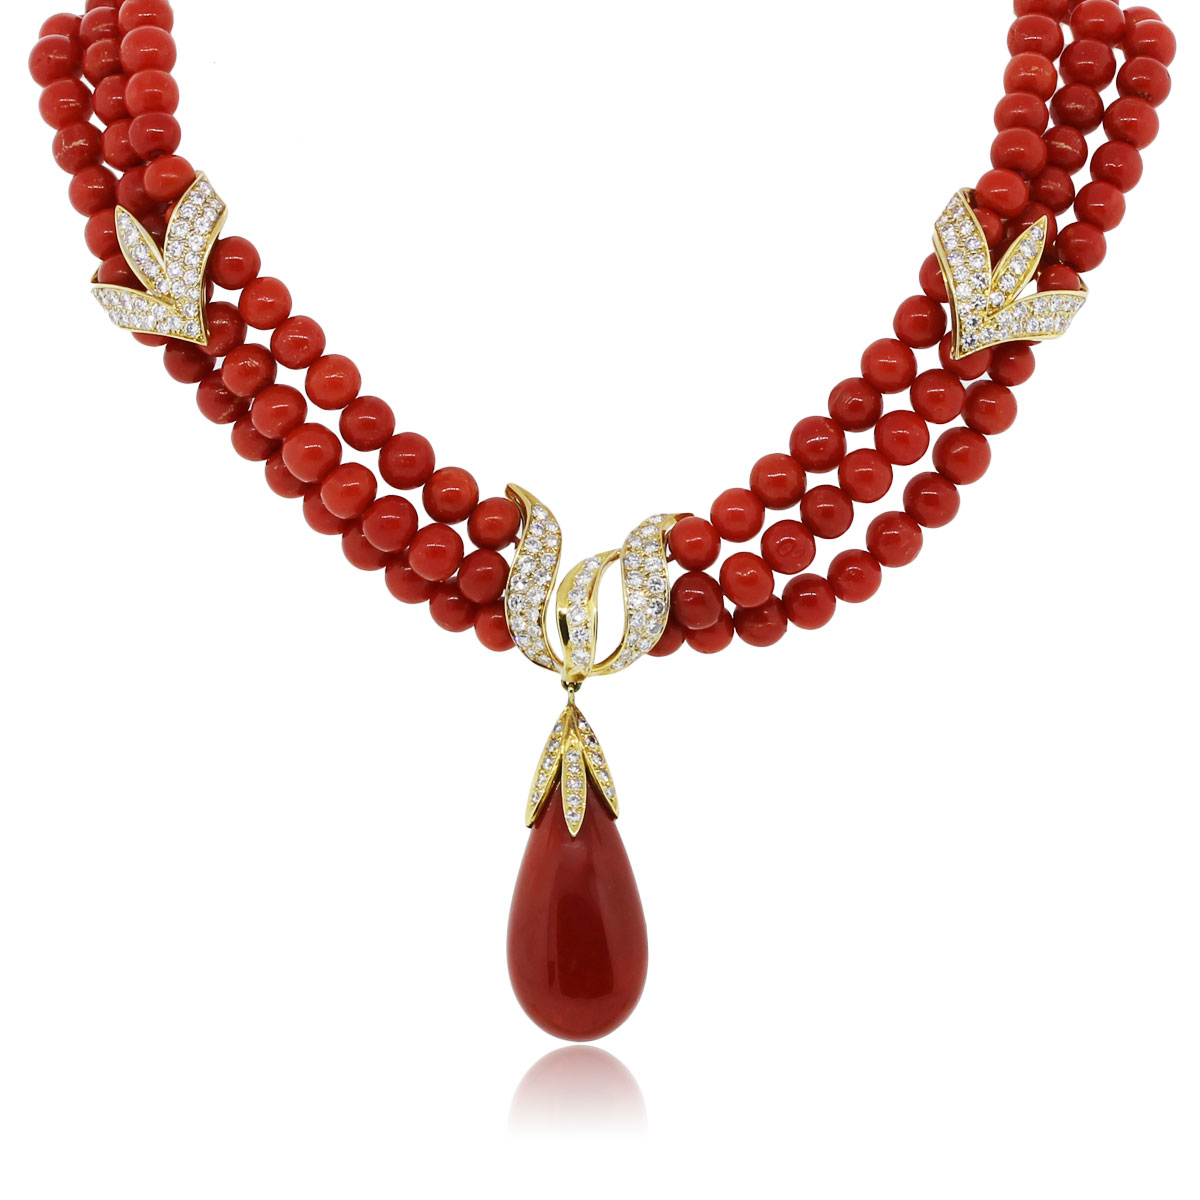 Vintage Coral and Diamond Necklace